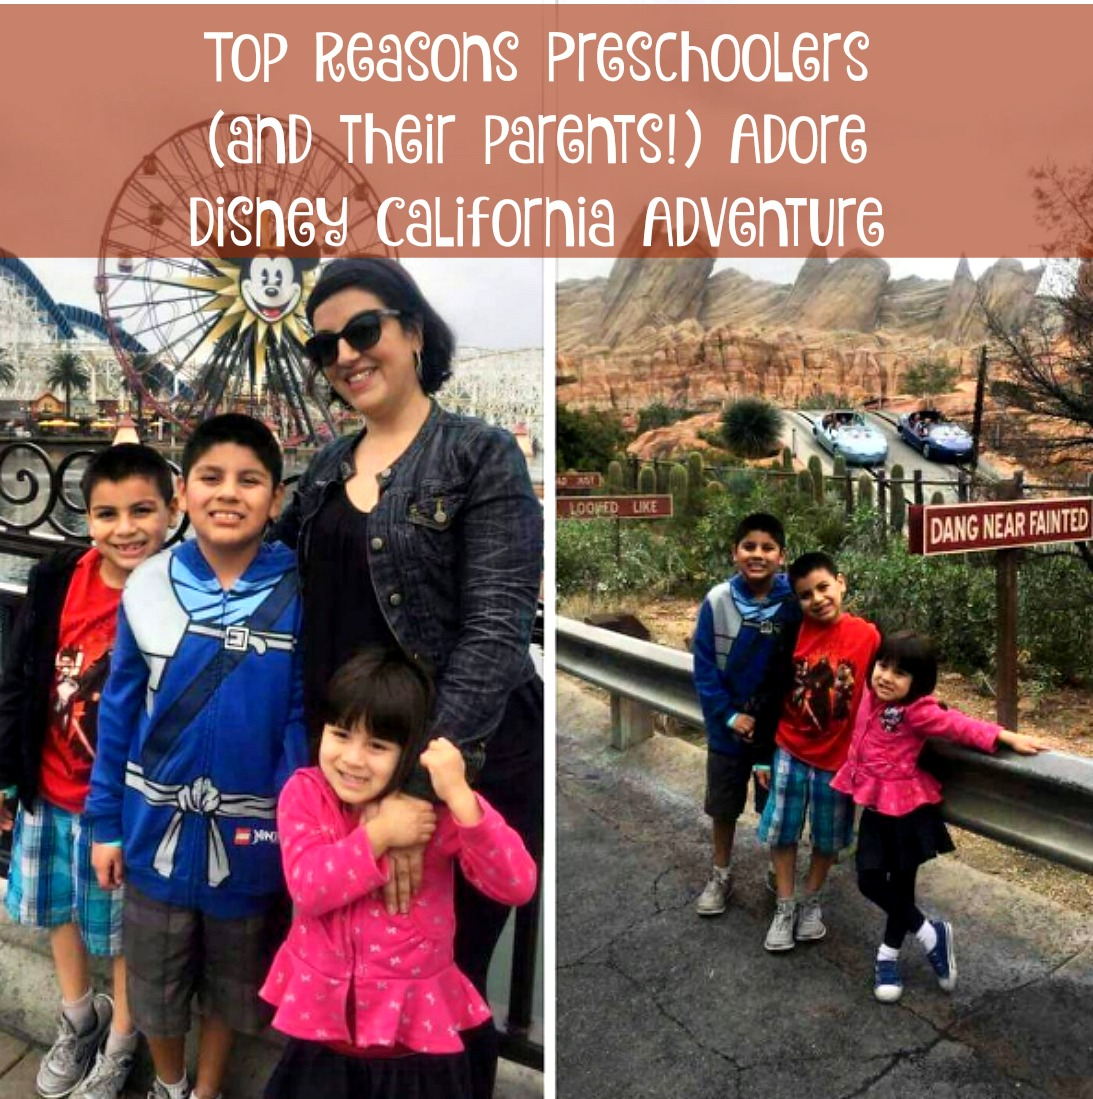 top-reasons-preschoolers-and-their-parents-adore-disneys-california-adventure